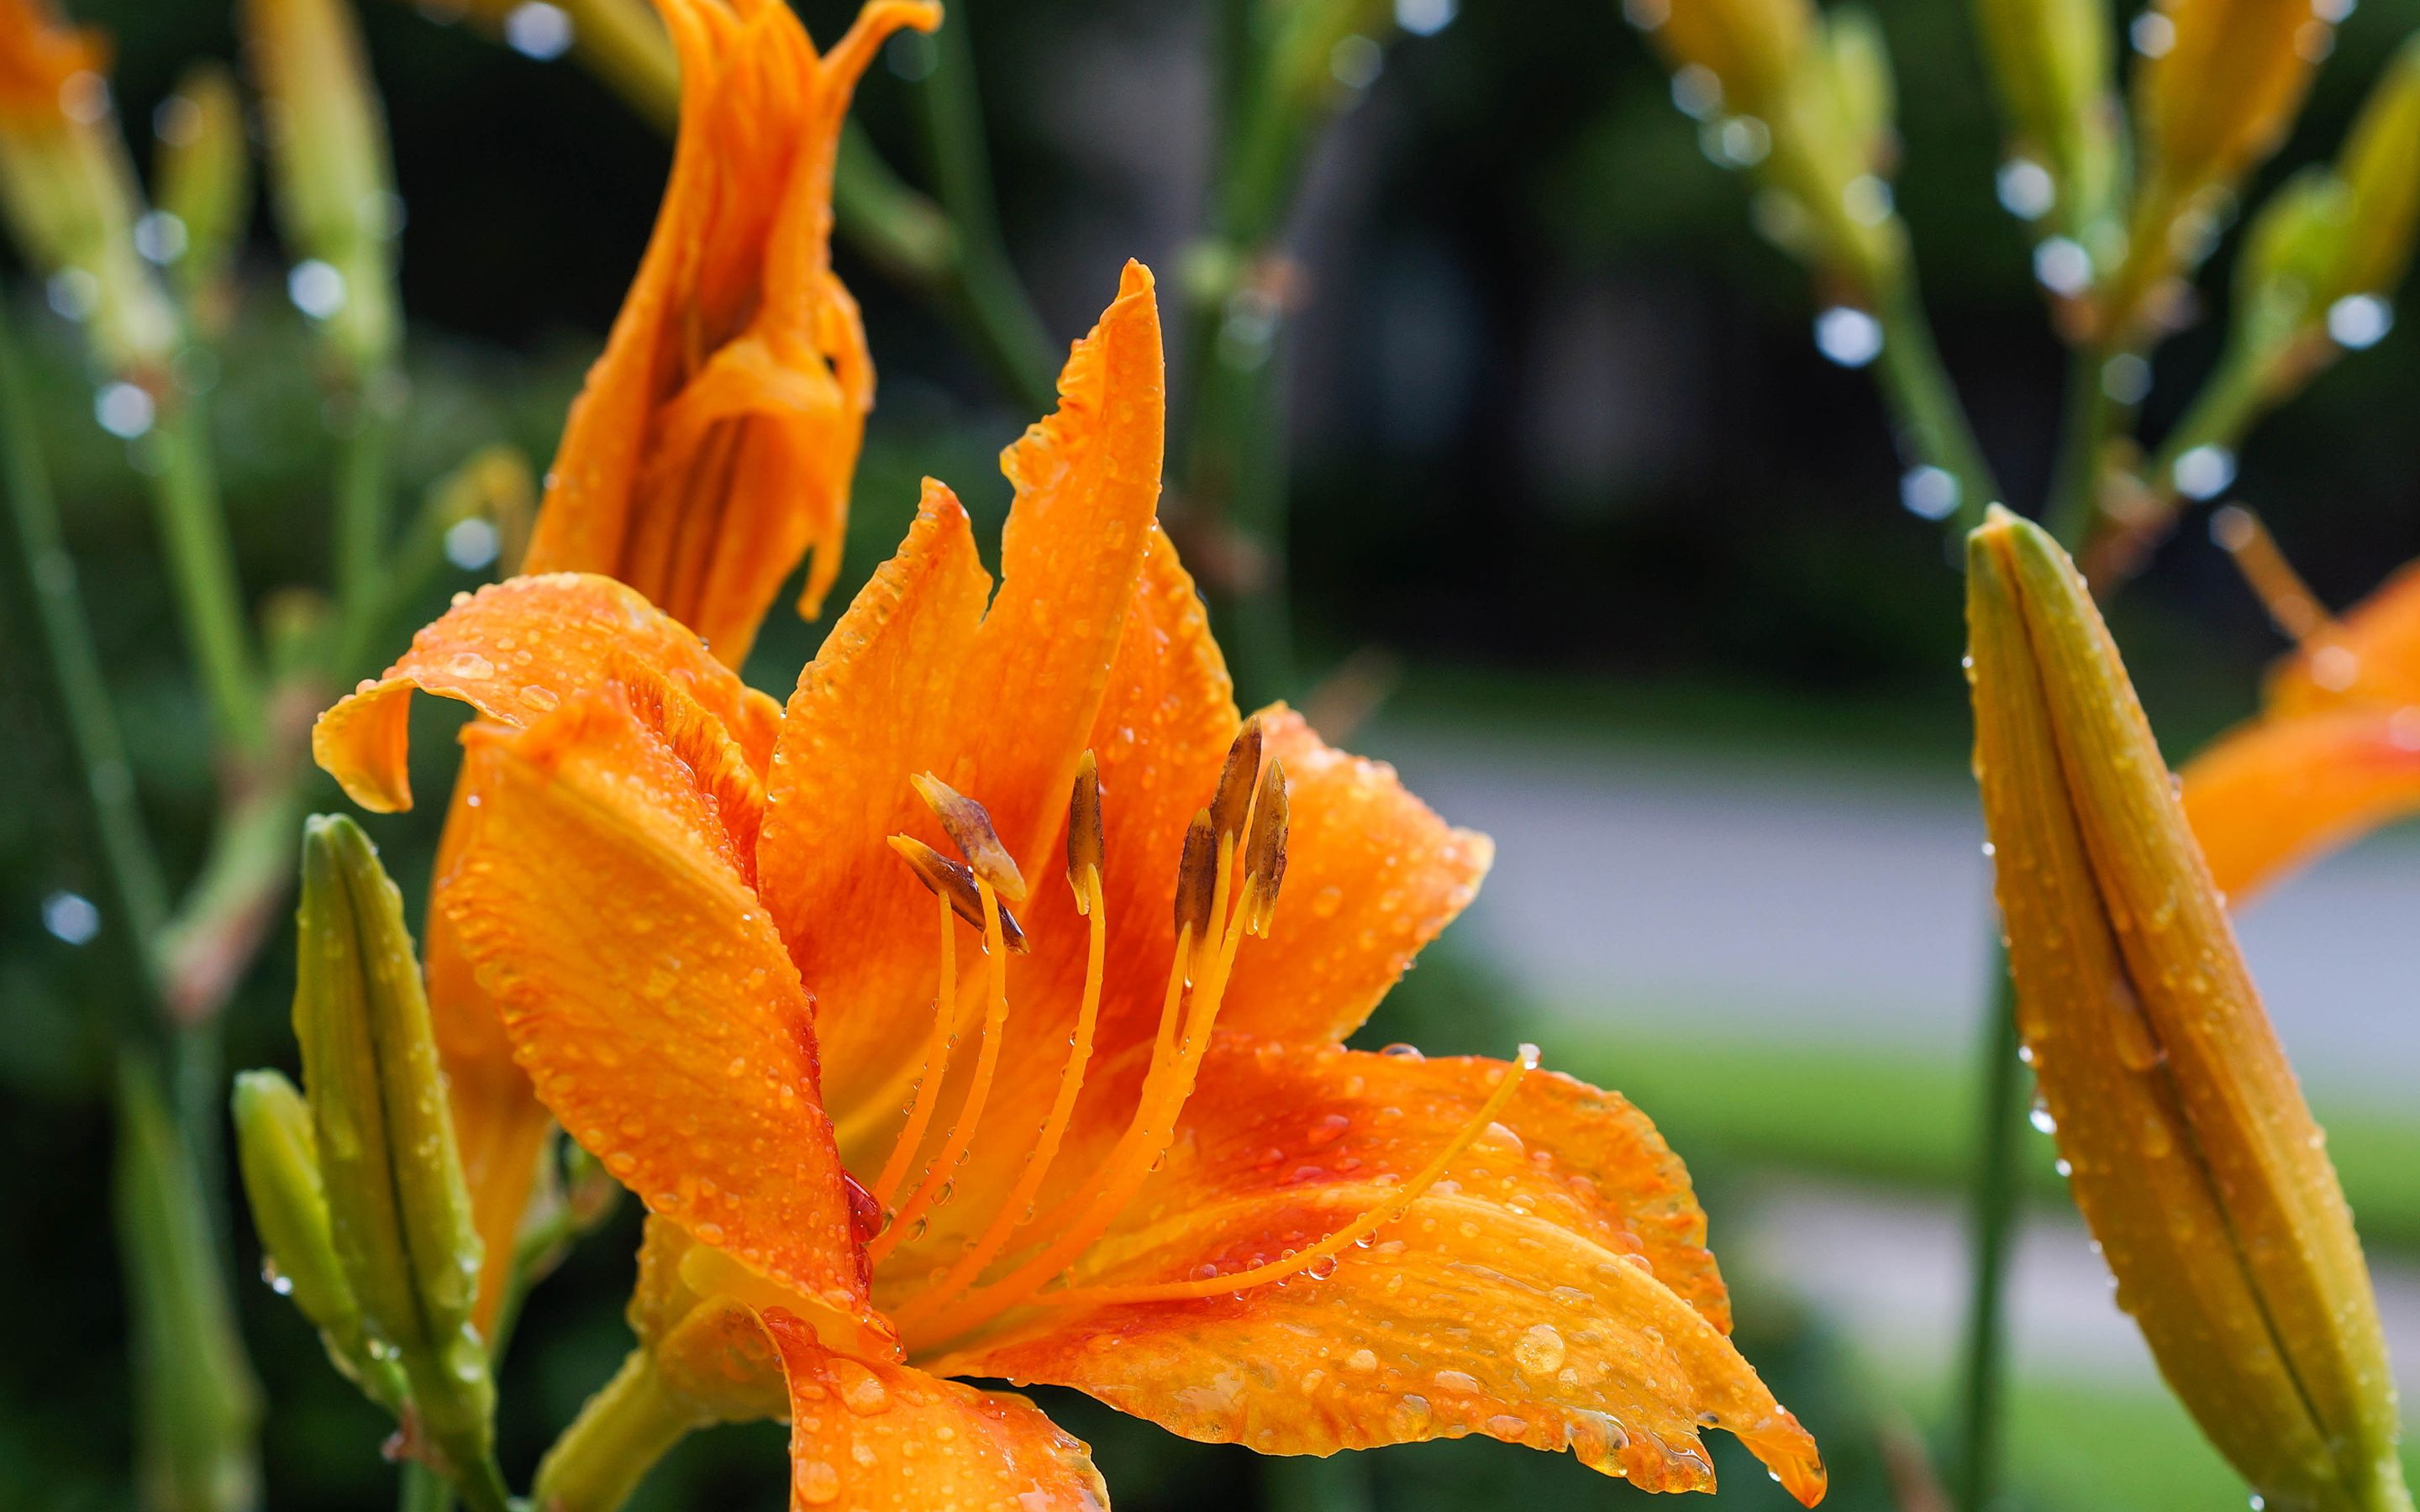 Daylily flower wallpapers pictures daylilies pinterest daylily flower wallpapers pictures izmirmasajfo